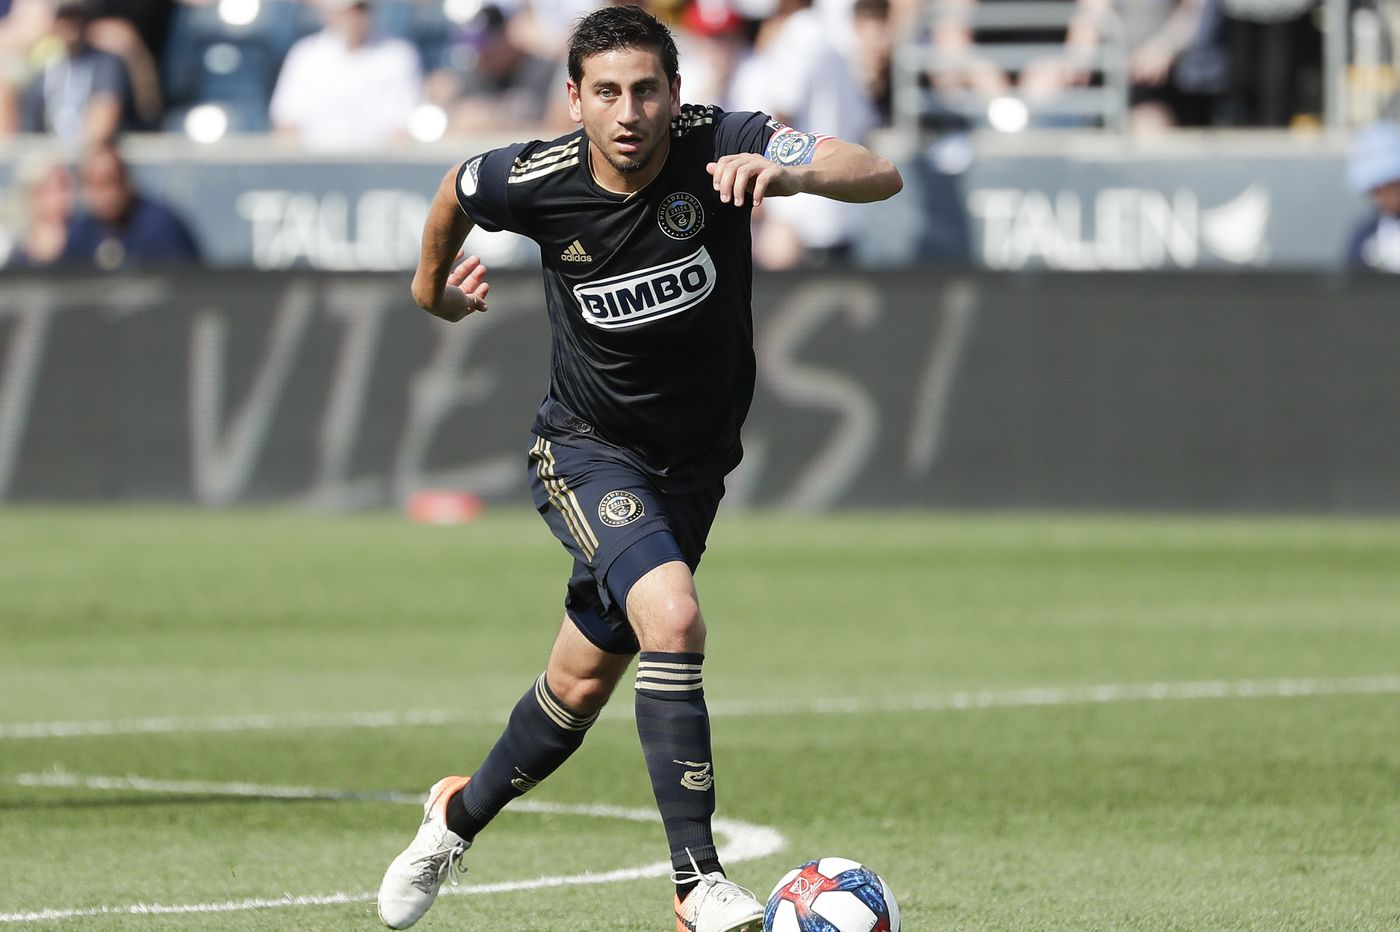 Watch: Union's Alejandro Bedoya yells for Congress to 'end gun violence' during goal celebration